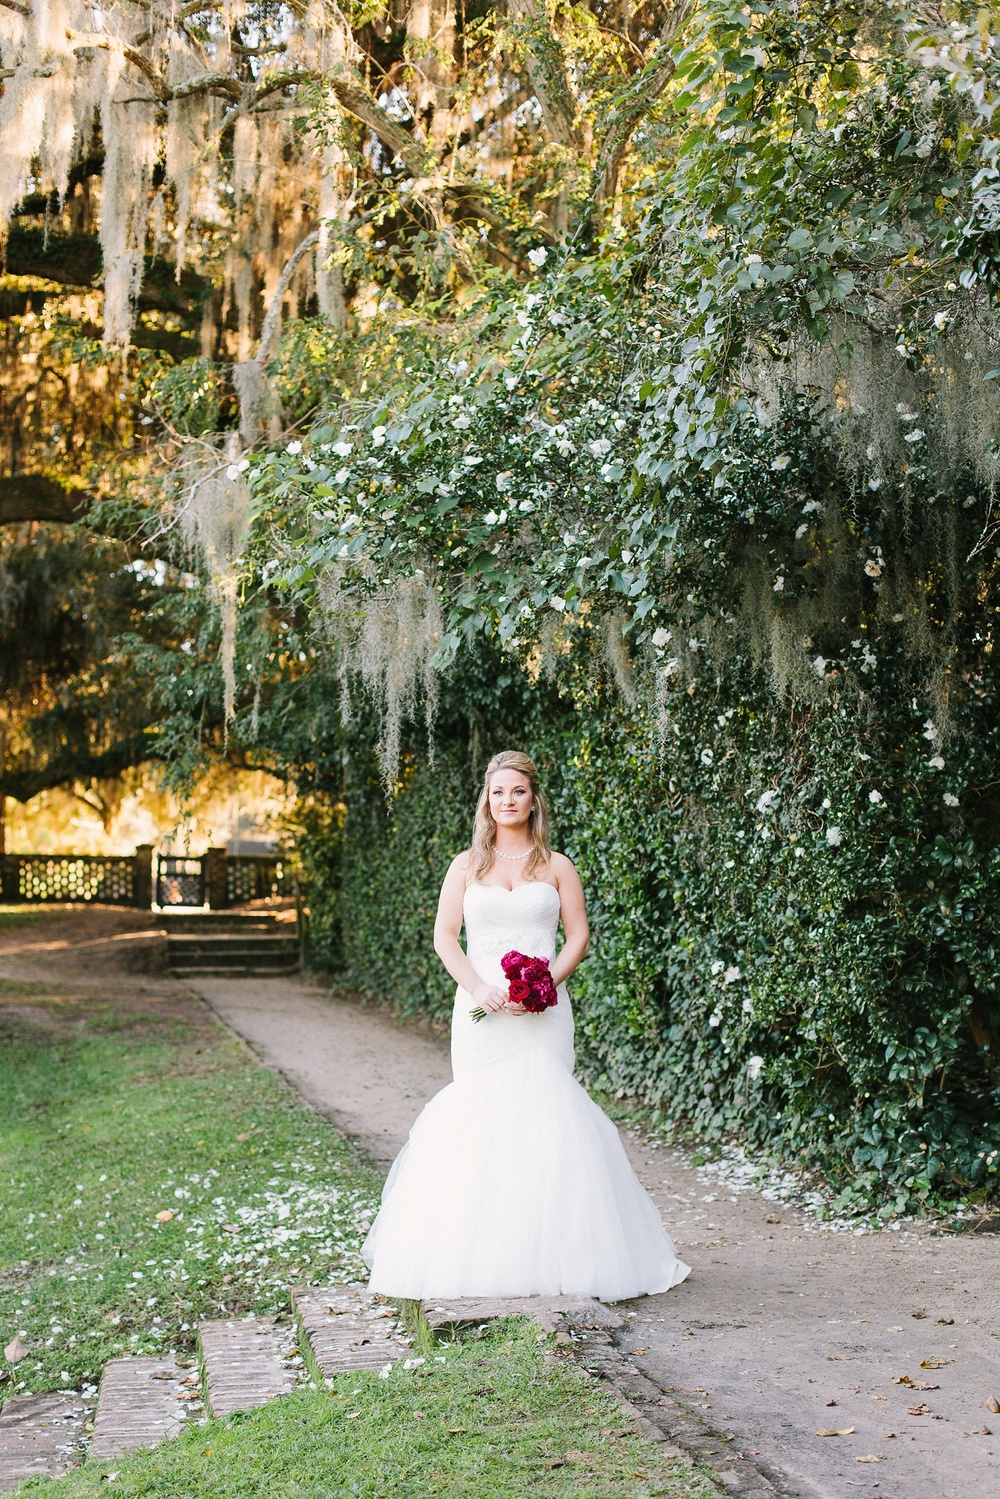 Lindsey_A_Miller_photography_bridal_portrait_middleton_plantation_charleston_sunset_spanish_moss_007.jpg